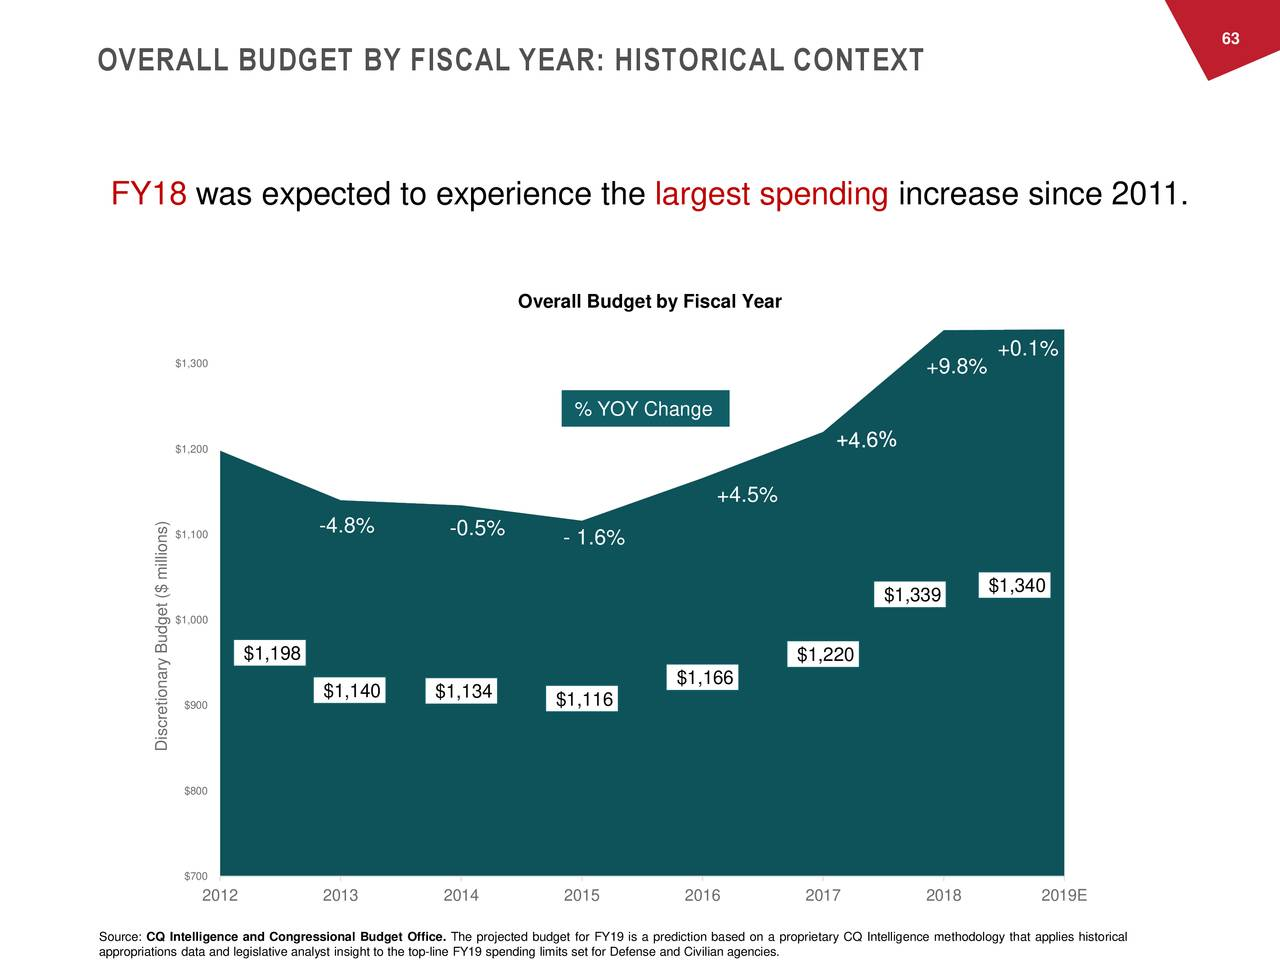 OVERALL BUDGET BY FISCAL YEAR: HISTORICAL CONTEXT FY18 was expected to experience the largest spending increase since 2011. Overall Budget by Fiscal Year $1,300 +0.1% +9.8% % YOY Change $1,200 +4.5% $1,100 -4.8% -0.5% - 1.6% $1,339 $1,340 $1,000 $1,198 $1,220 $1,166 $900 $1,140 $1,134 $1,116 Discretionary Budget ($ millions) $800 $700 2012 2013 2014 2015 2016 2017 2018 2019E Source: CQ Intelligence and Congressional Budget Office. The projected budget for FY19 is a prediction based on a proprietary CQ Intelligence methodology that applies historical